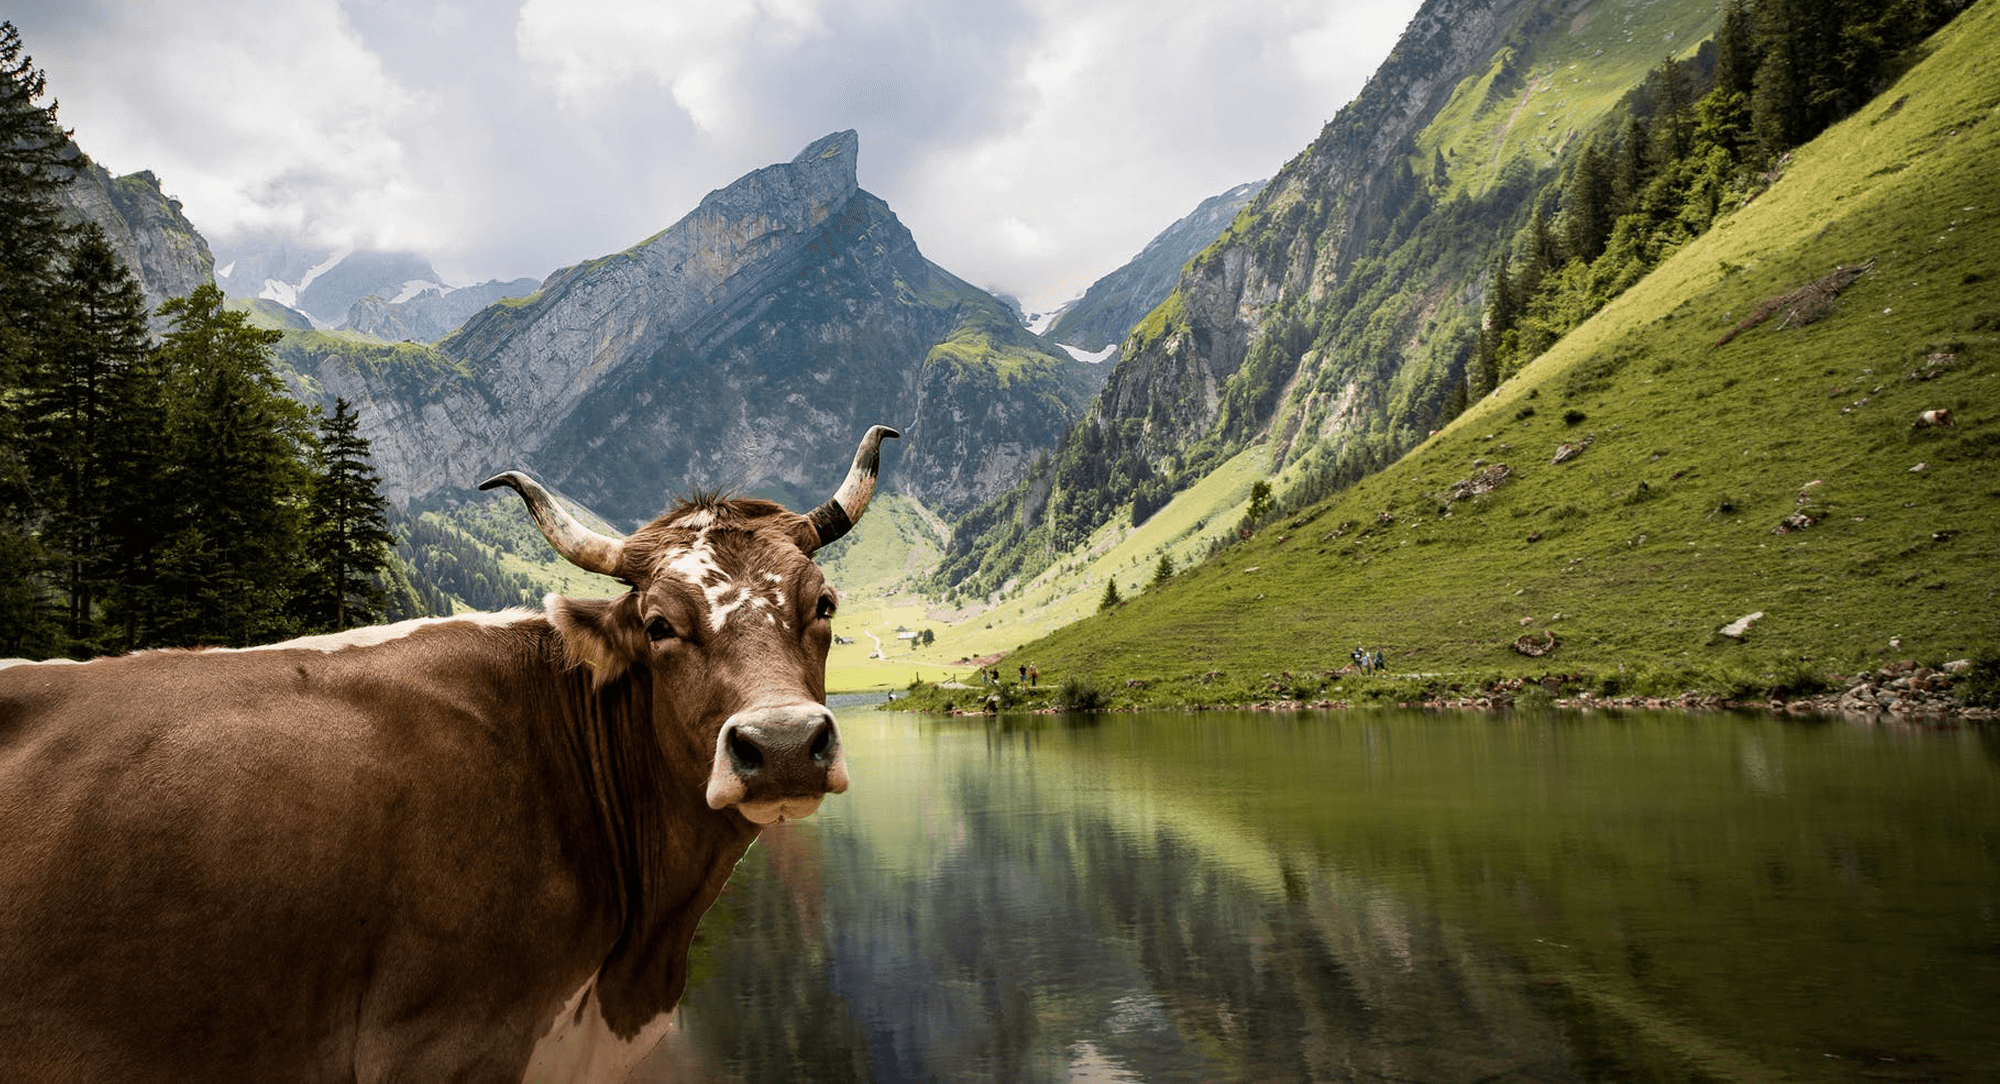 Swiss cow in the mountain meadows